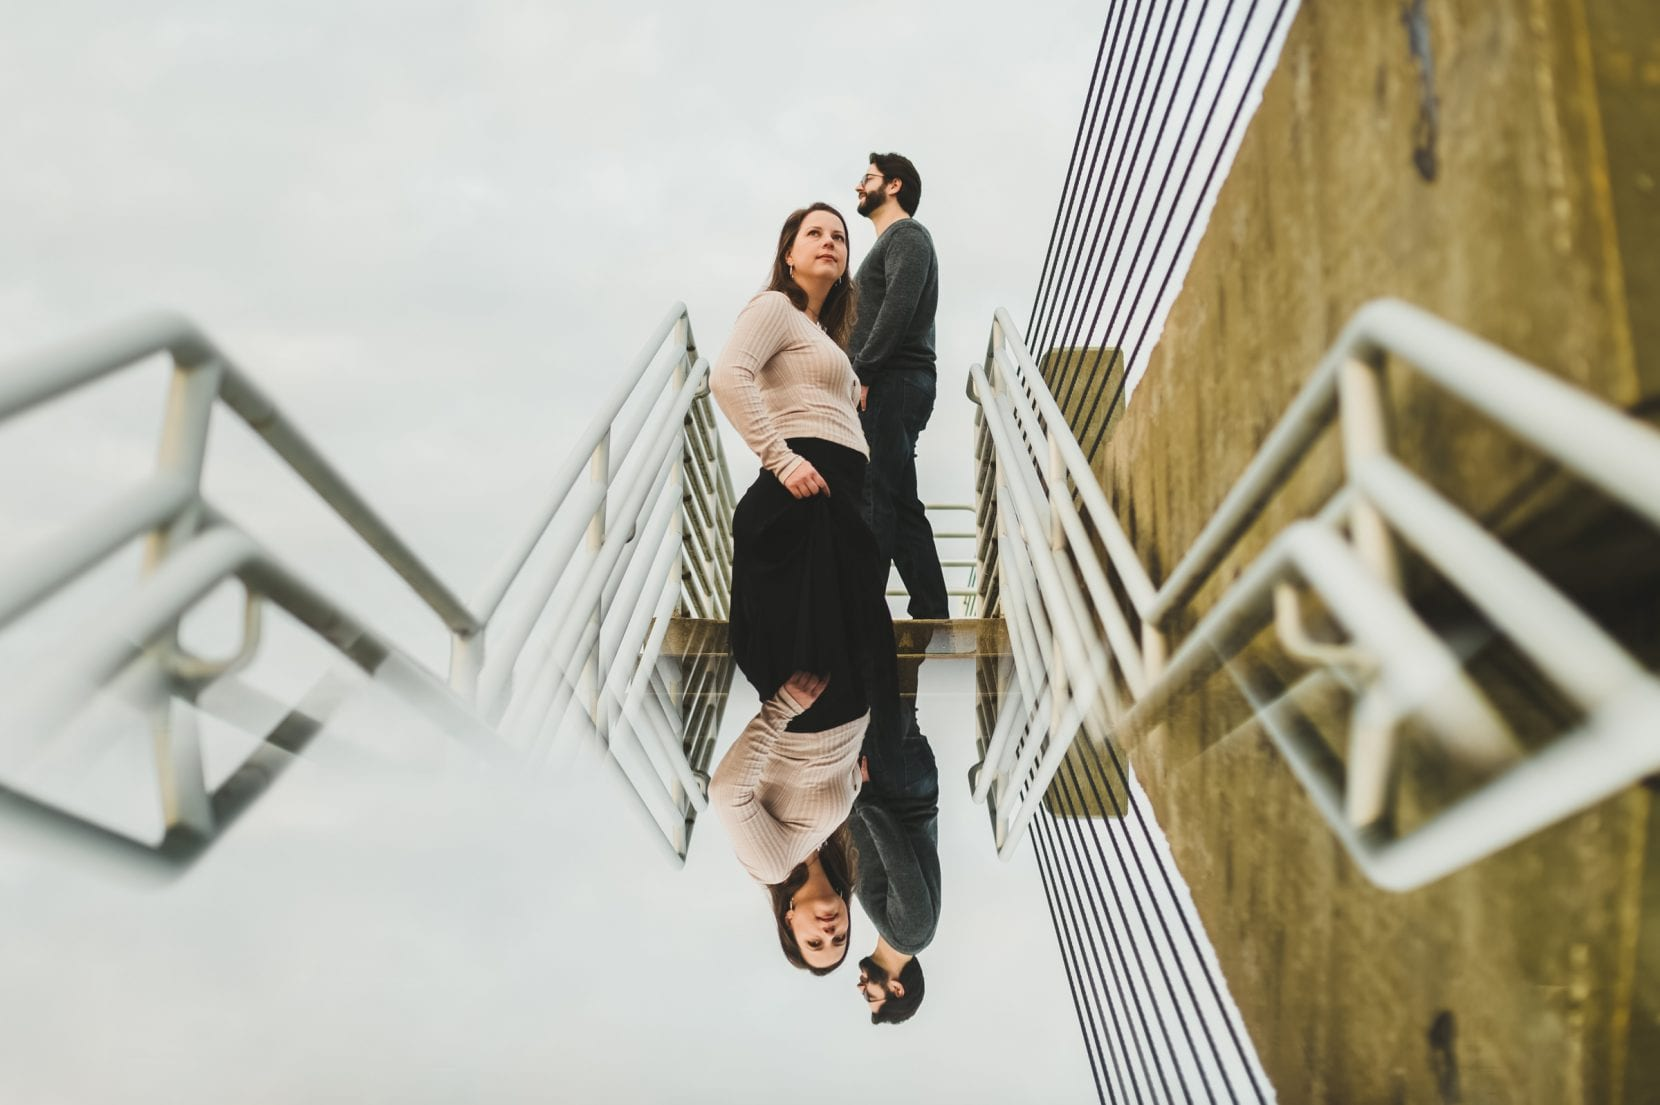 reflection shot of couple on stairs